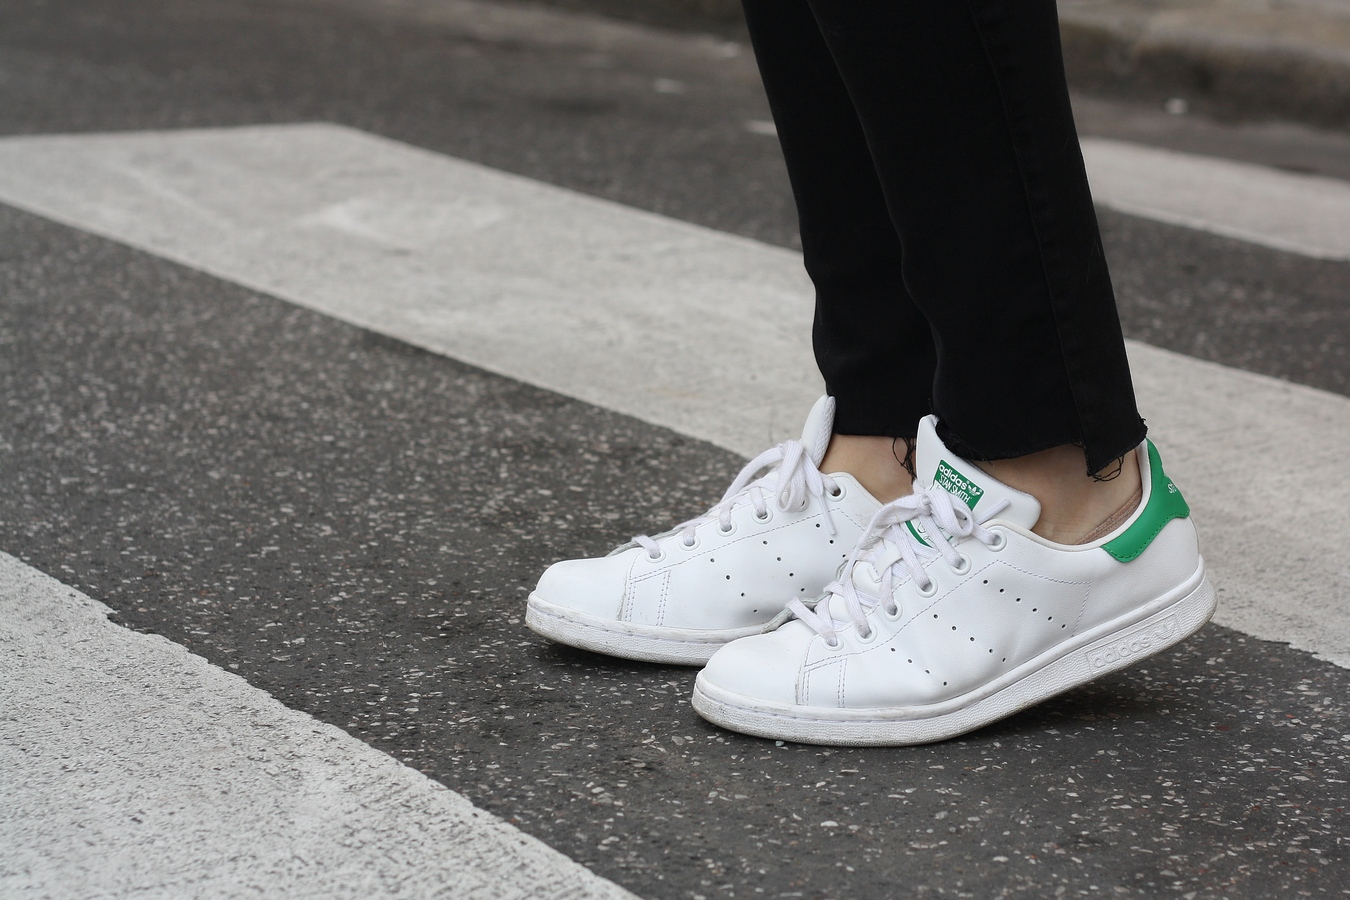 Blog mode femme Paris - Du style, Madame - Streetstyle - look - stan smith